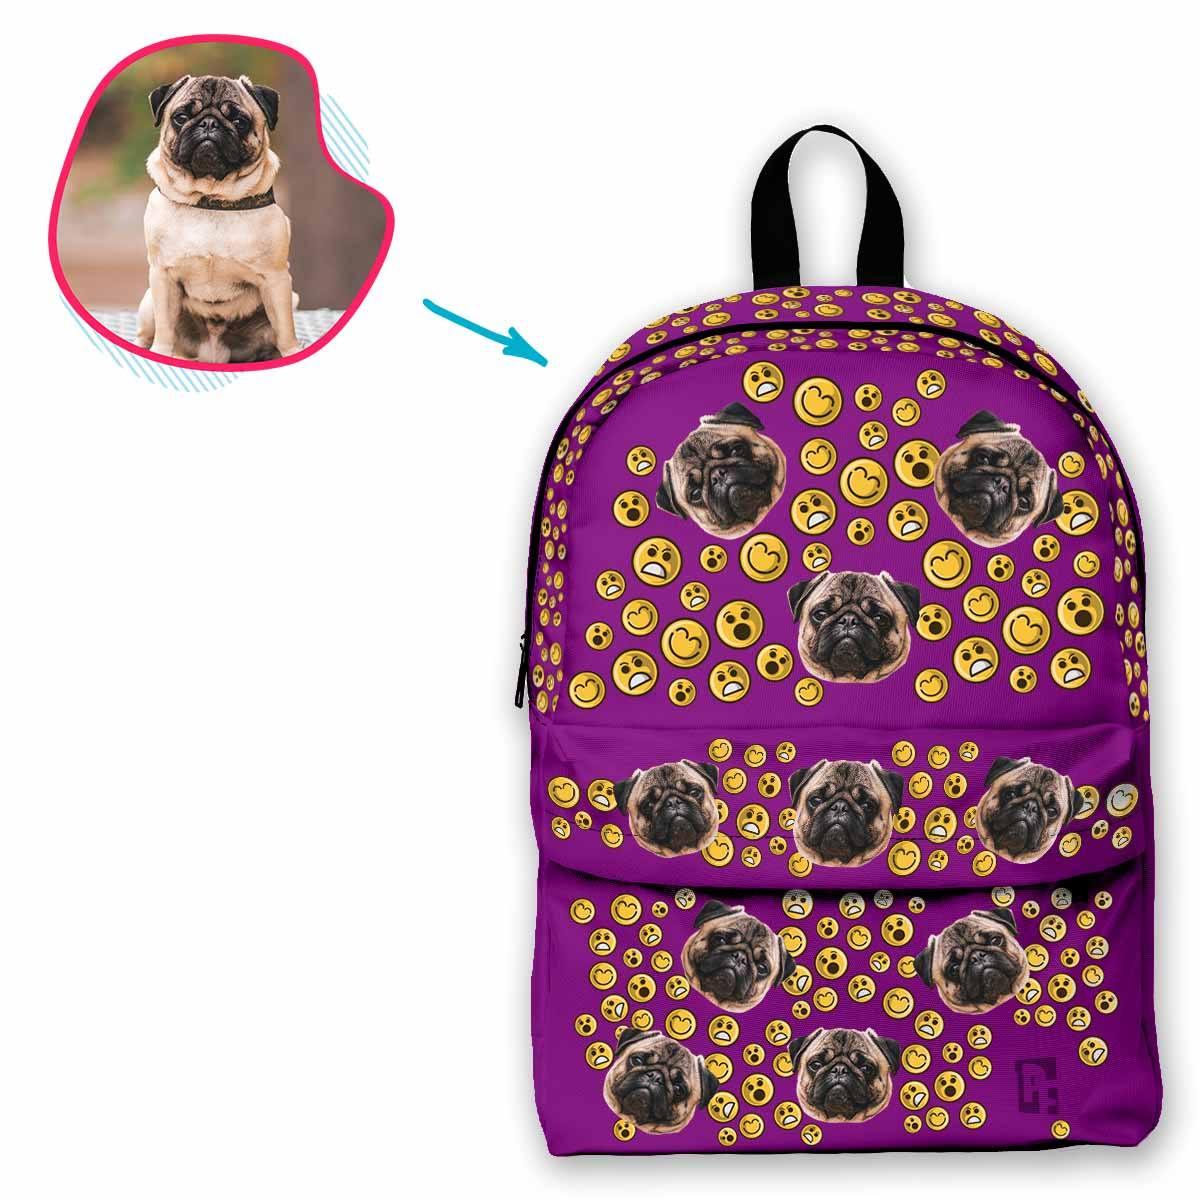 purple Smiles classic backpack personalized with photo of face printed on it